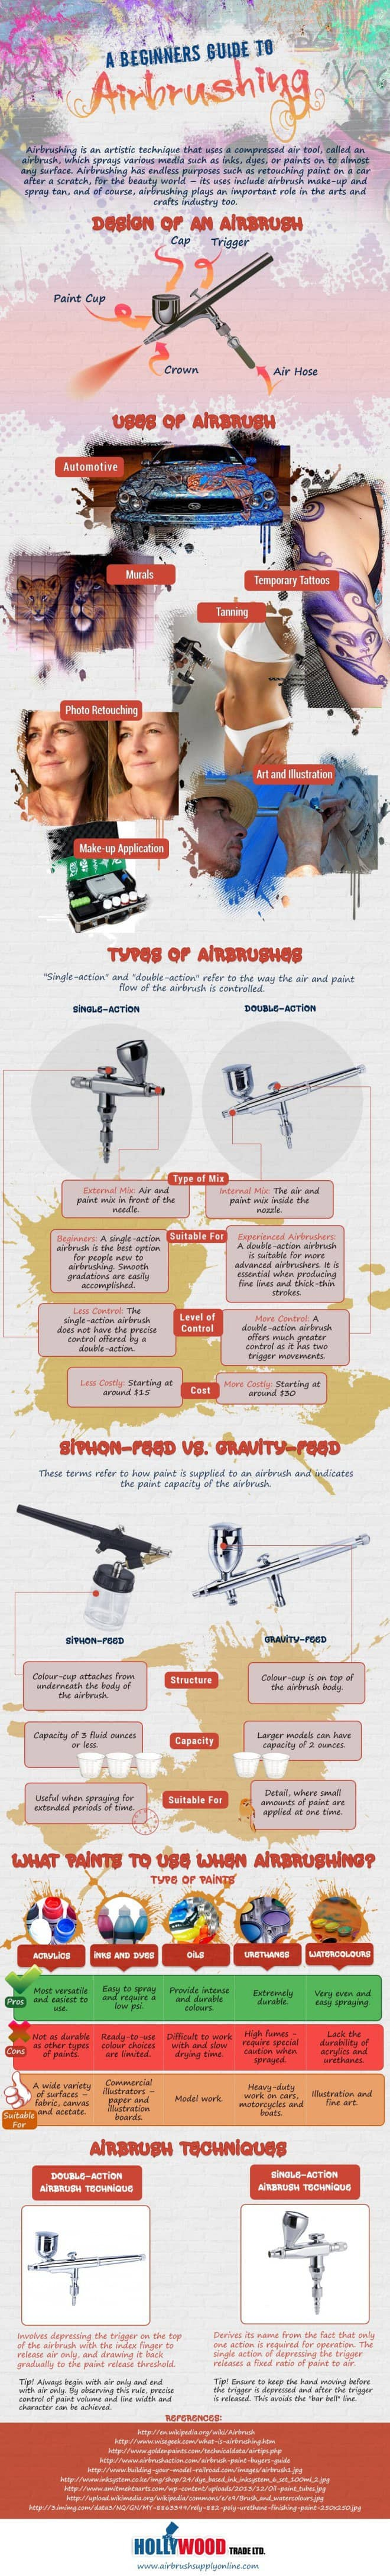 image 660x4361 - Airbrush Infographic - a beginner's guide to airbrushing